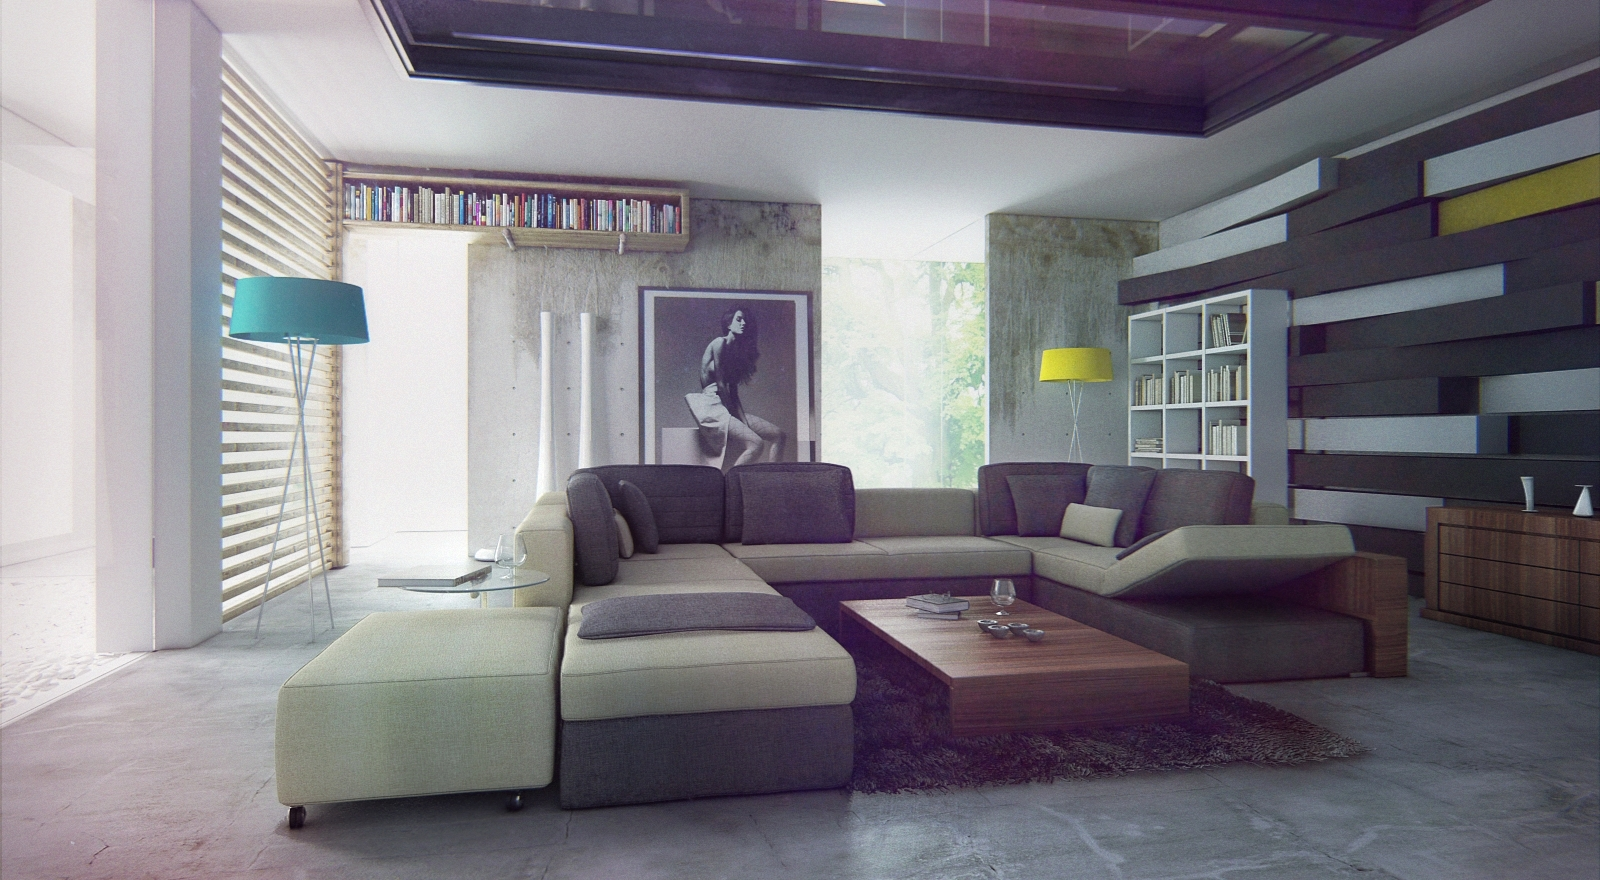 bachelor pad living room ideas bachelor pad ideas 21794